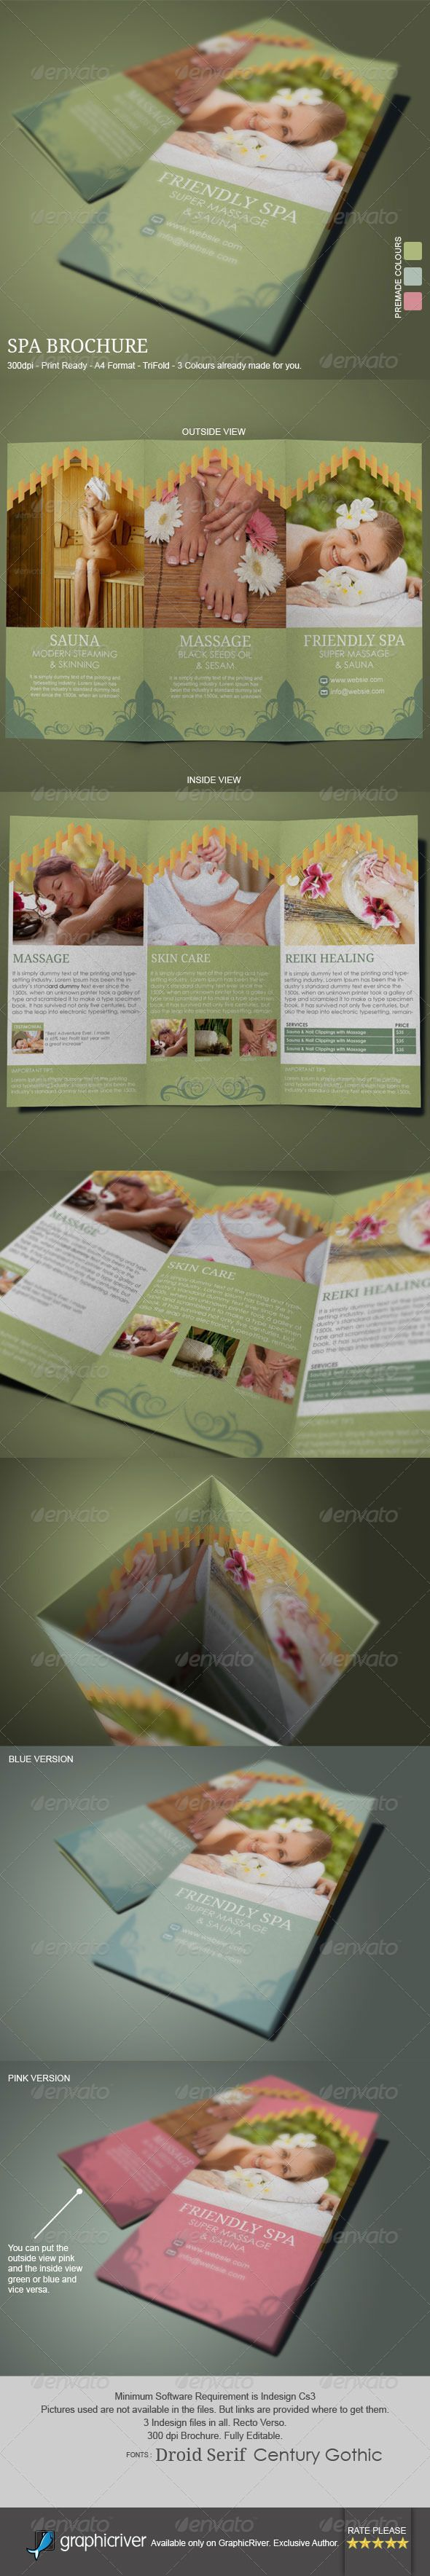 Brochure template for Wellness Spa , Health spa, or Reiki Healing